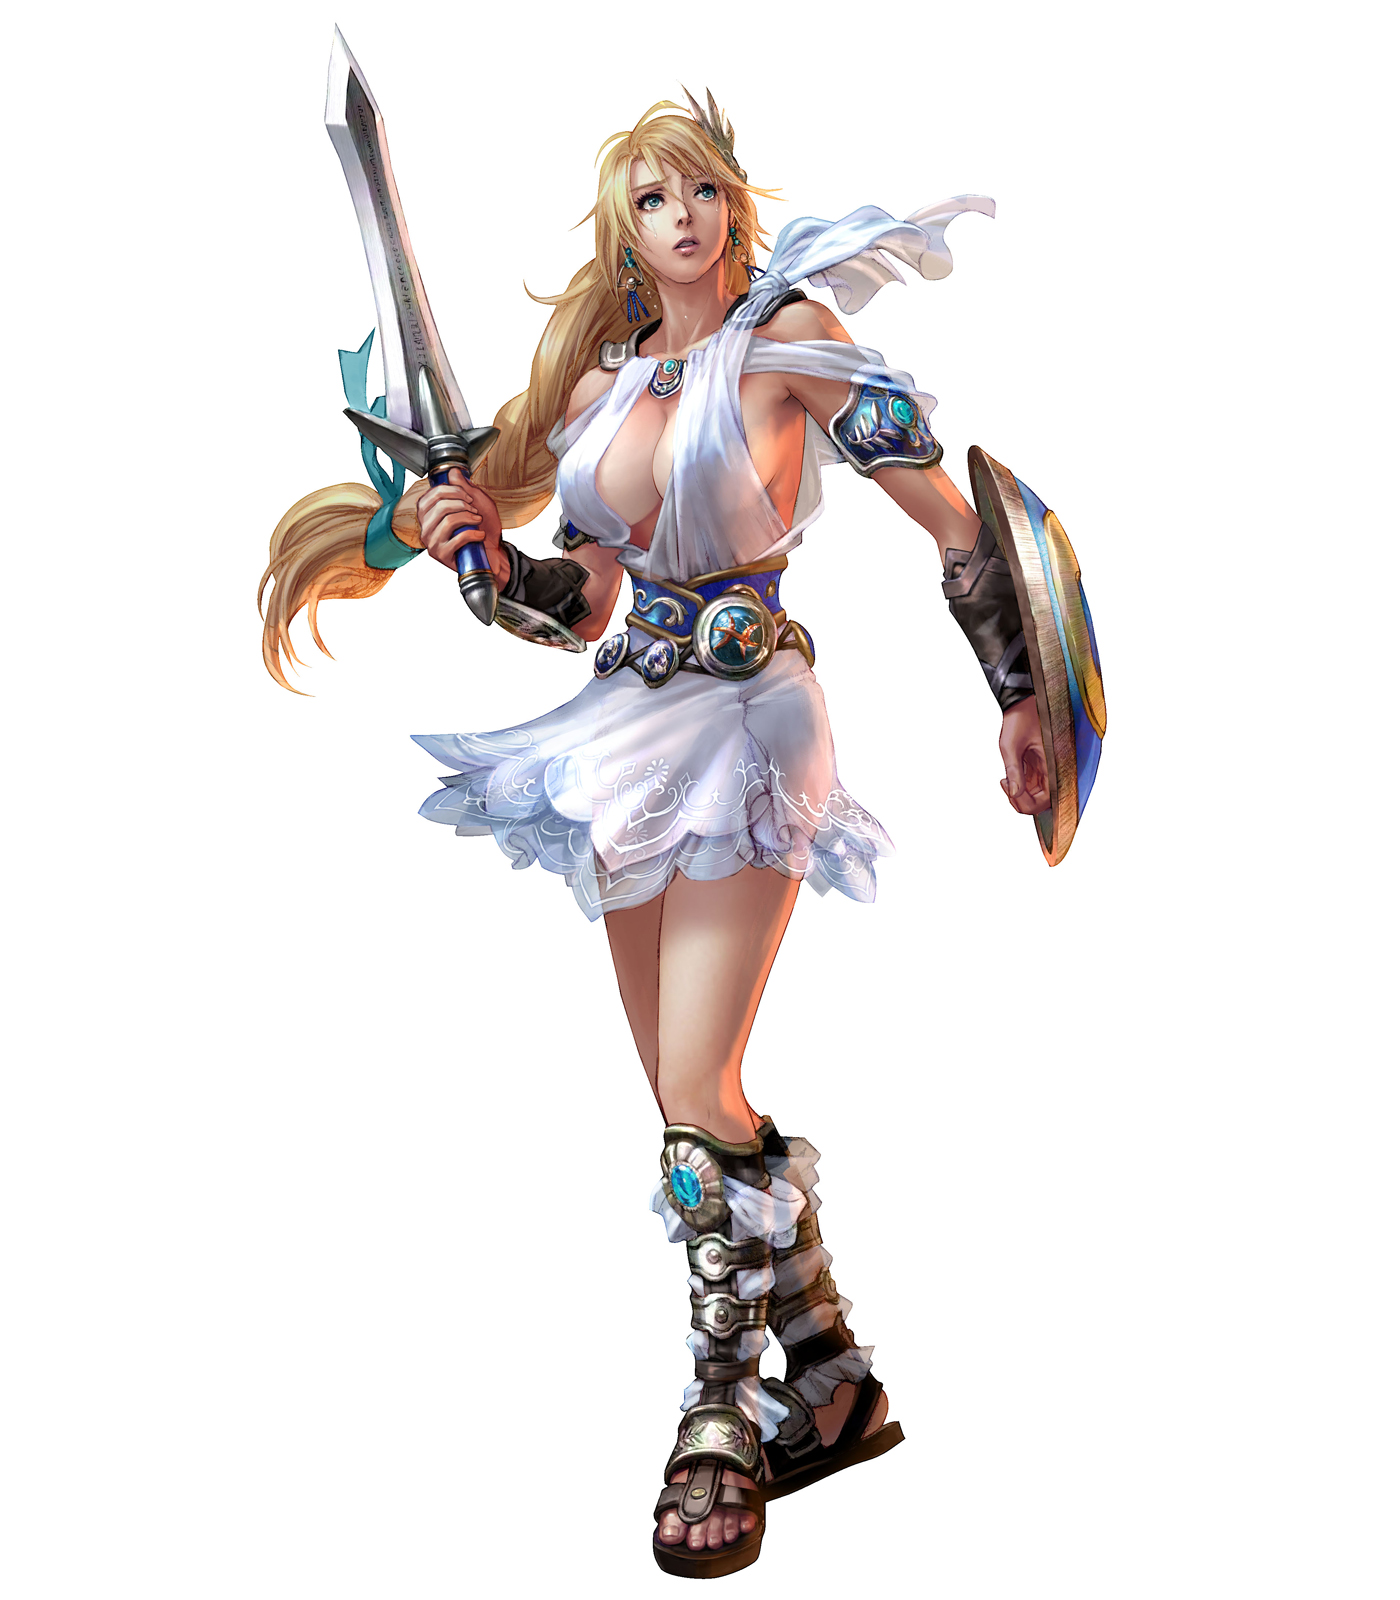 Warriors Orochi 2: (Japan) Warriors Orochi 3 Ultimate Gets A Surprise Guest